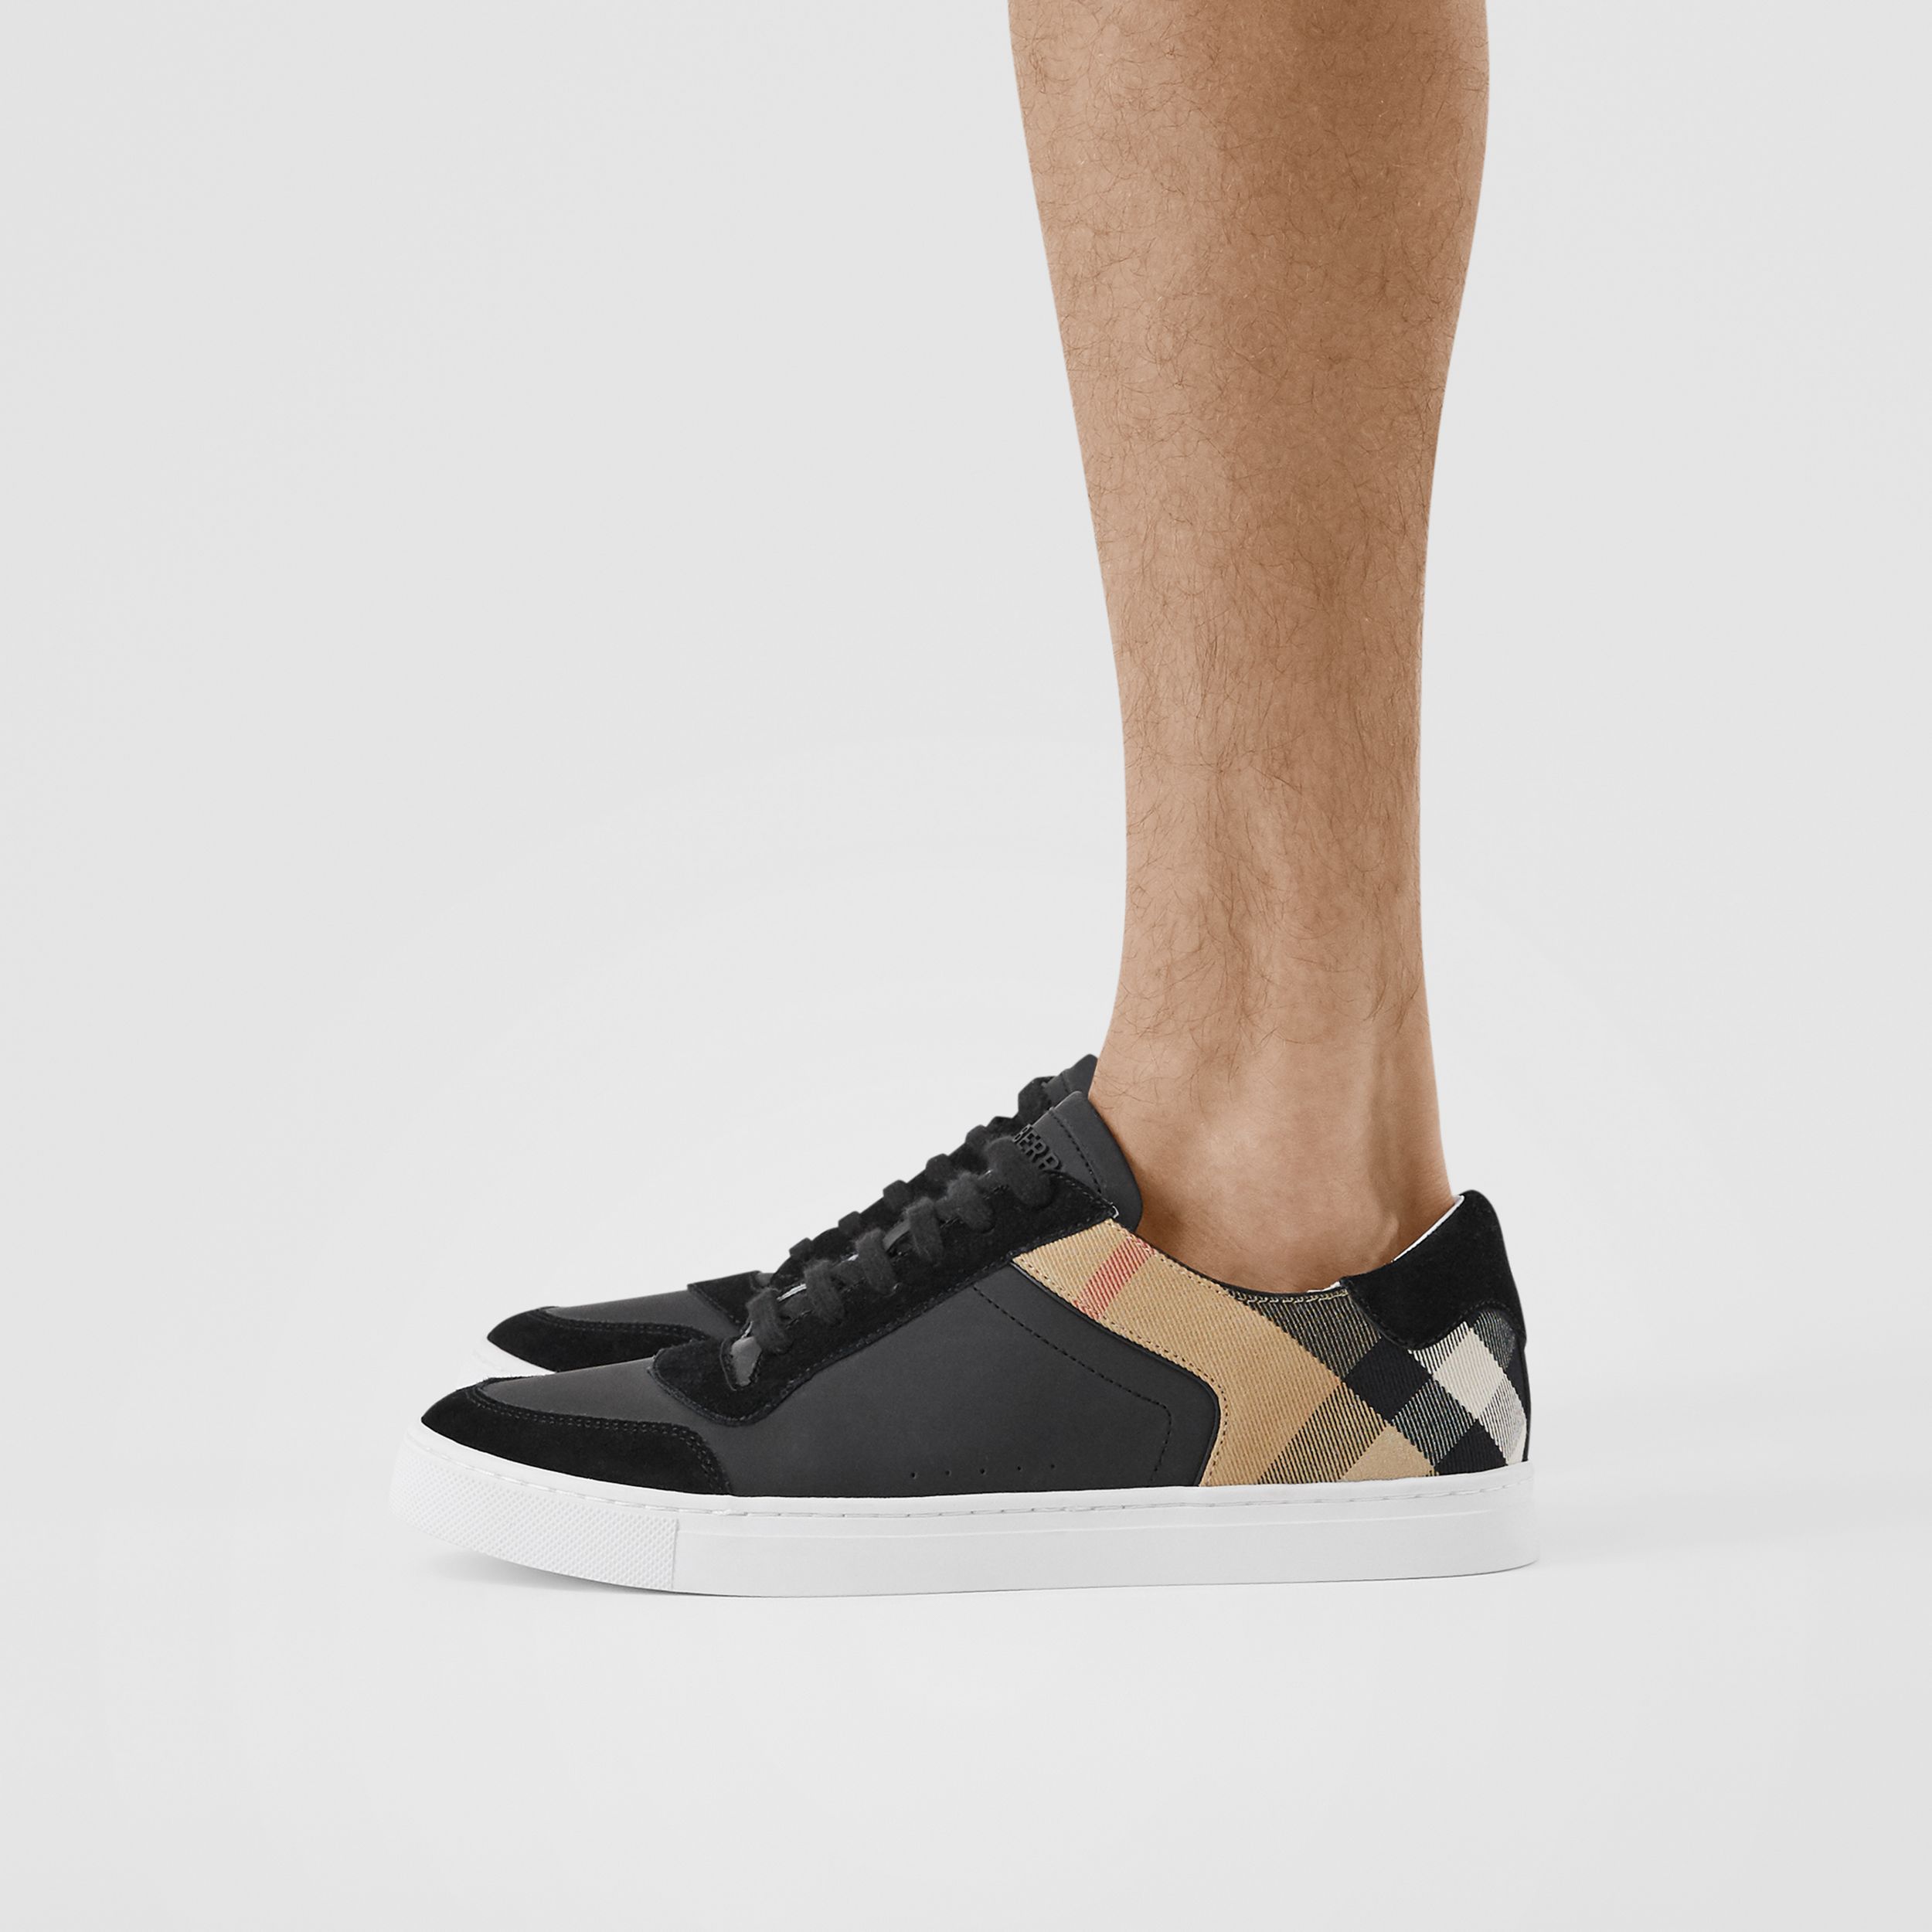 Leather, Suede and House Check Sneakers in Black - Men | Burberry United States - 3